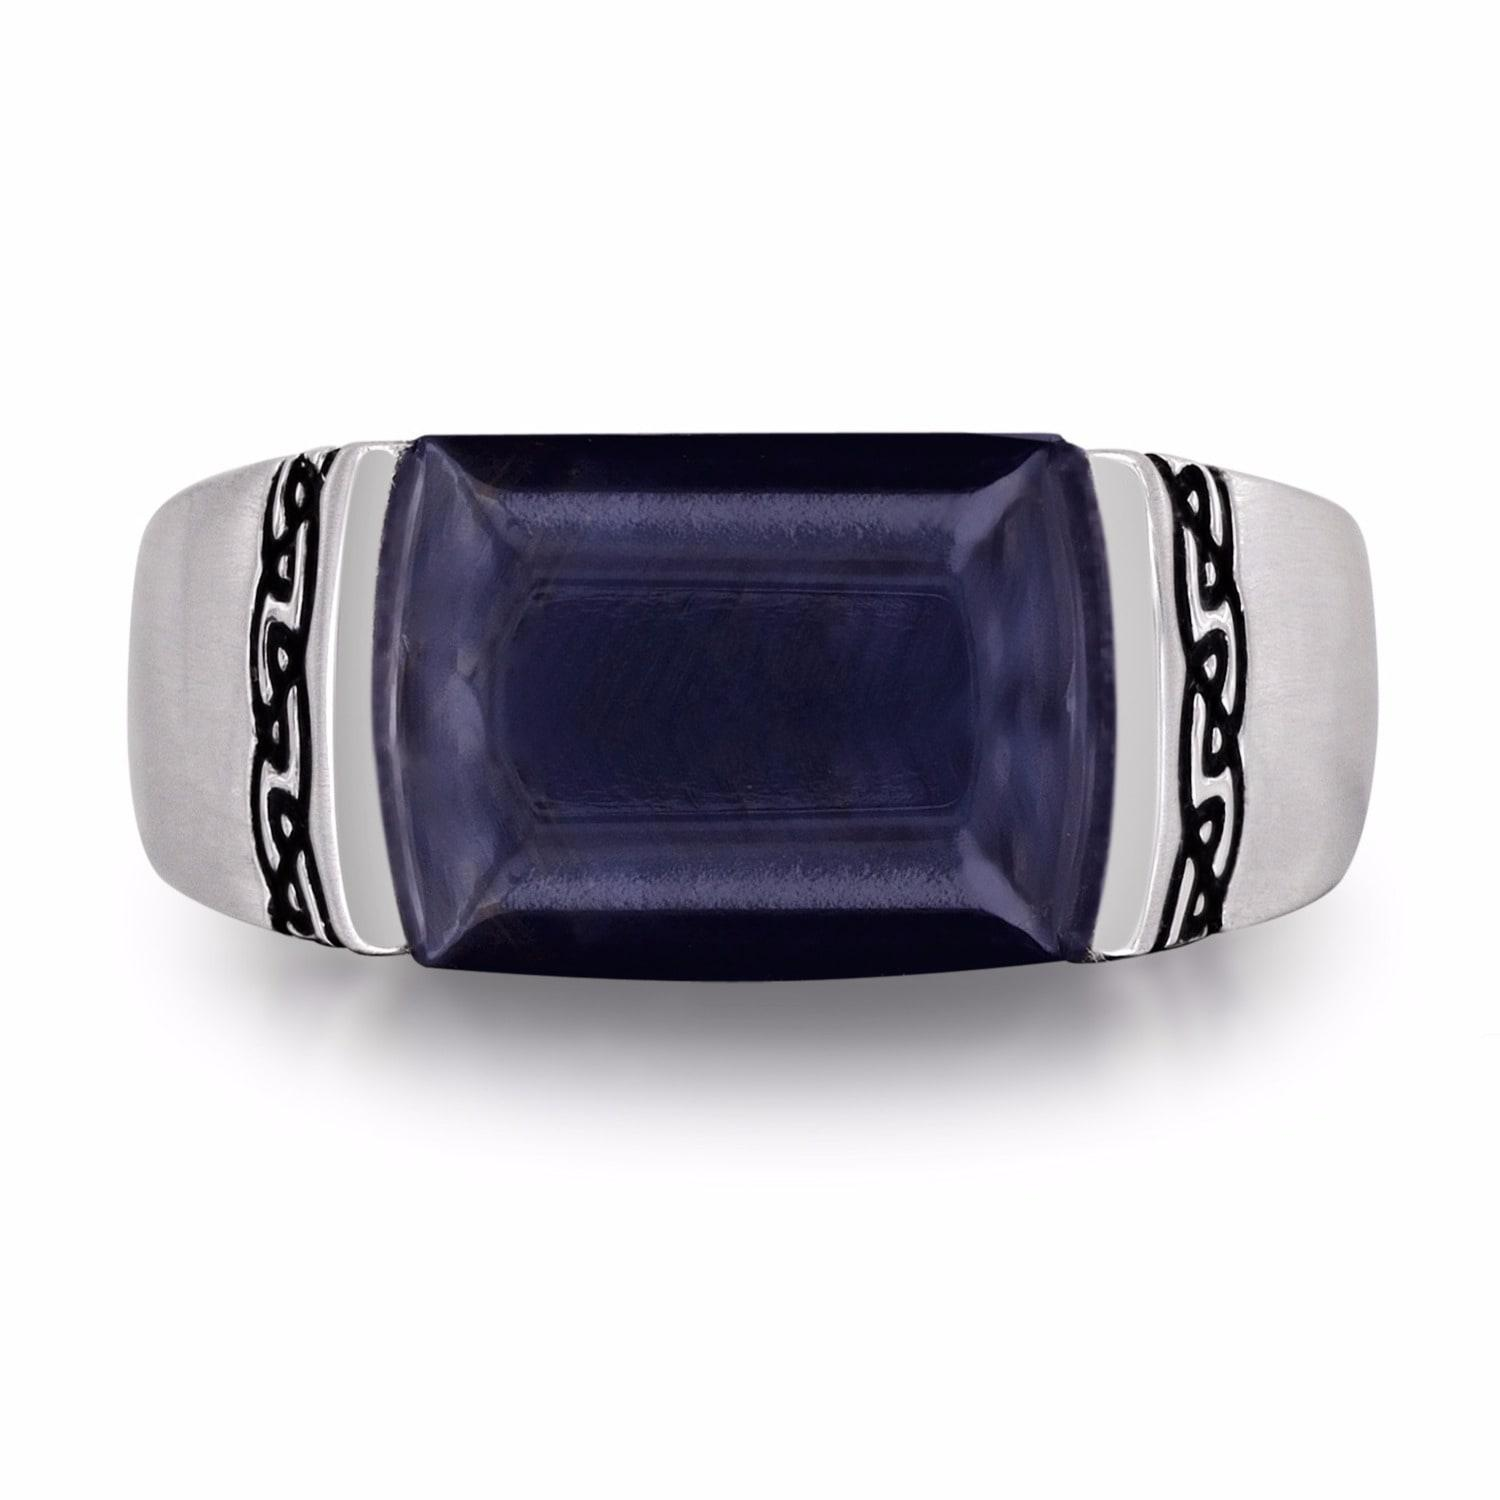 rings david with product gallery in exotic signet lyst ring silverblue normal stone pietersite yurman jewelry blue silver